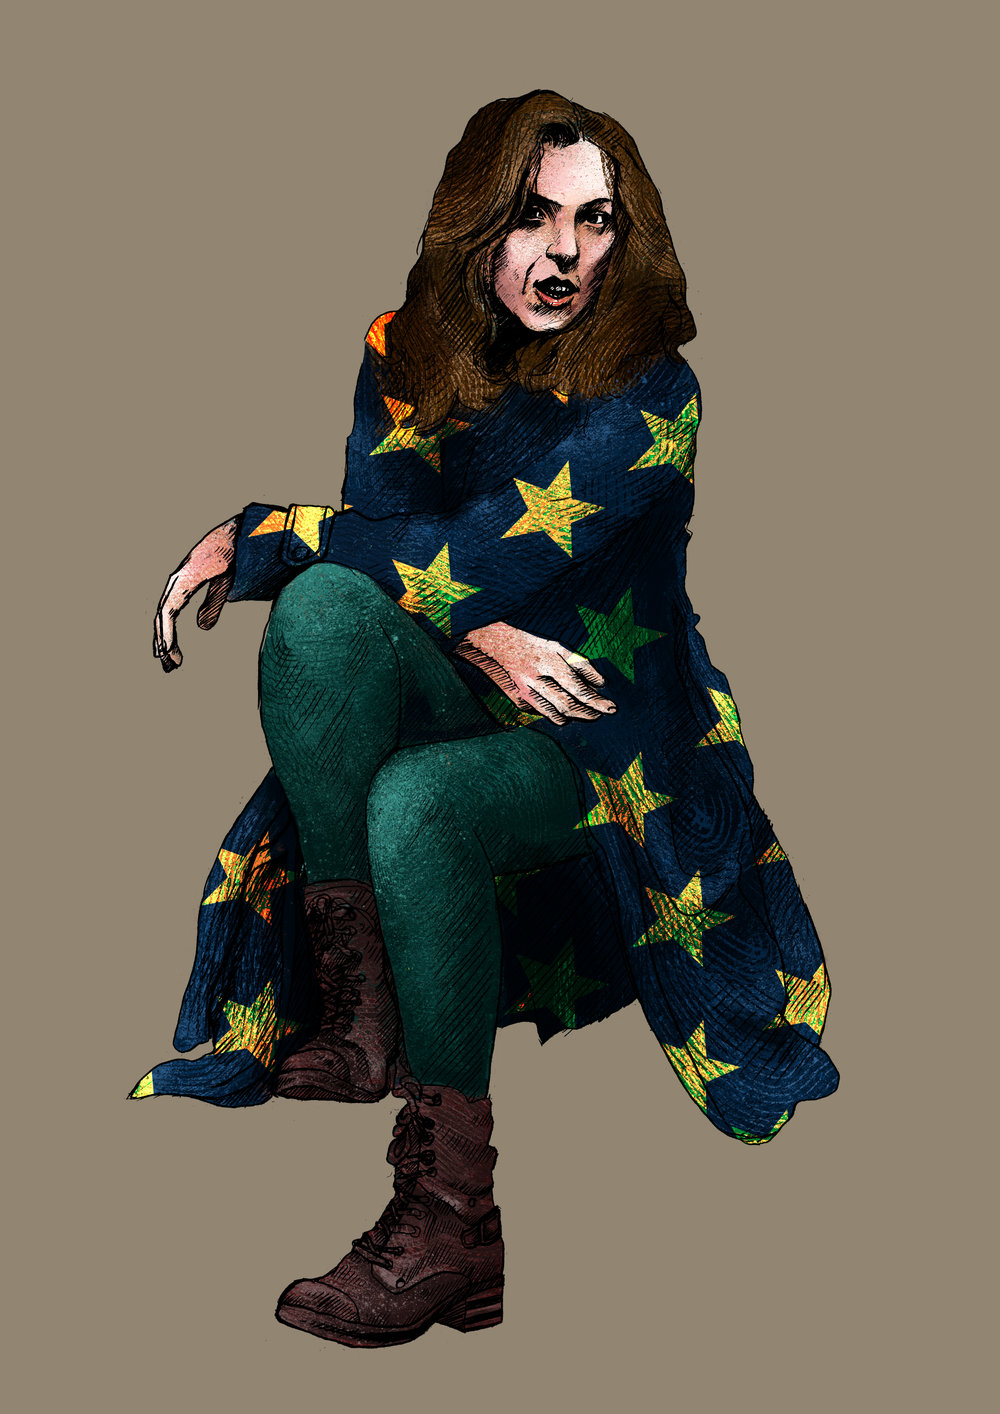 The illustration for the Bridget Christie poster without type.